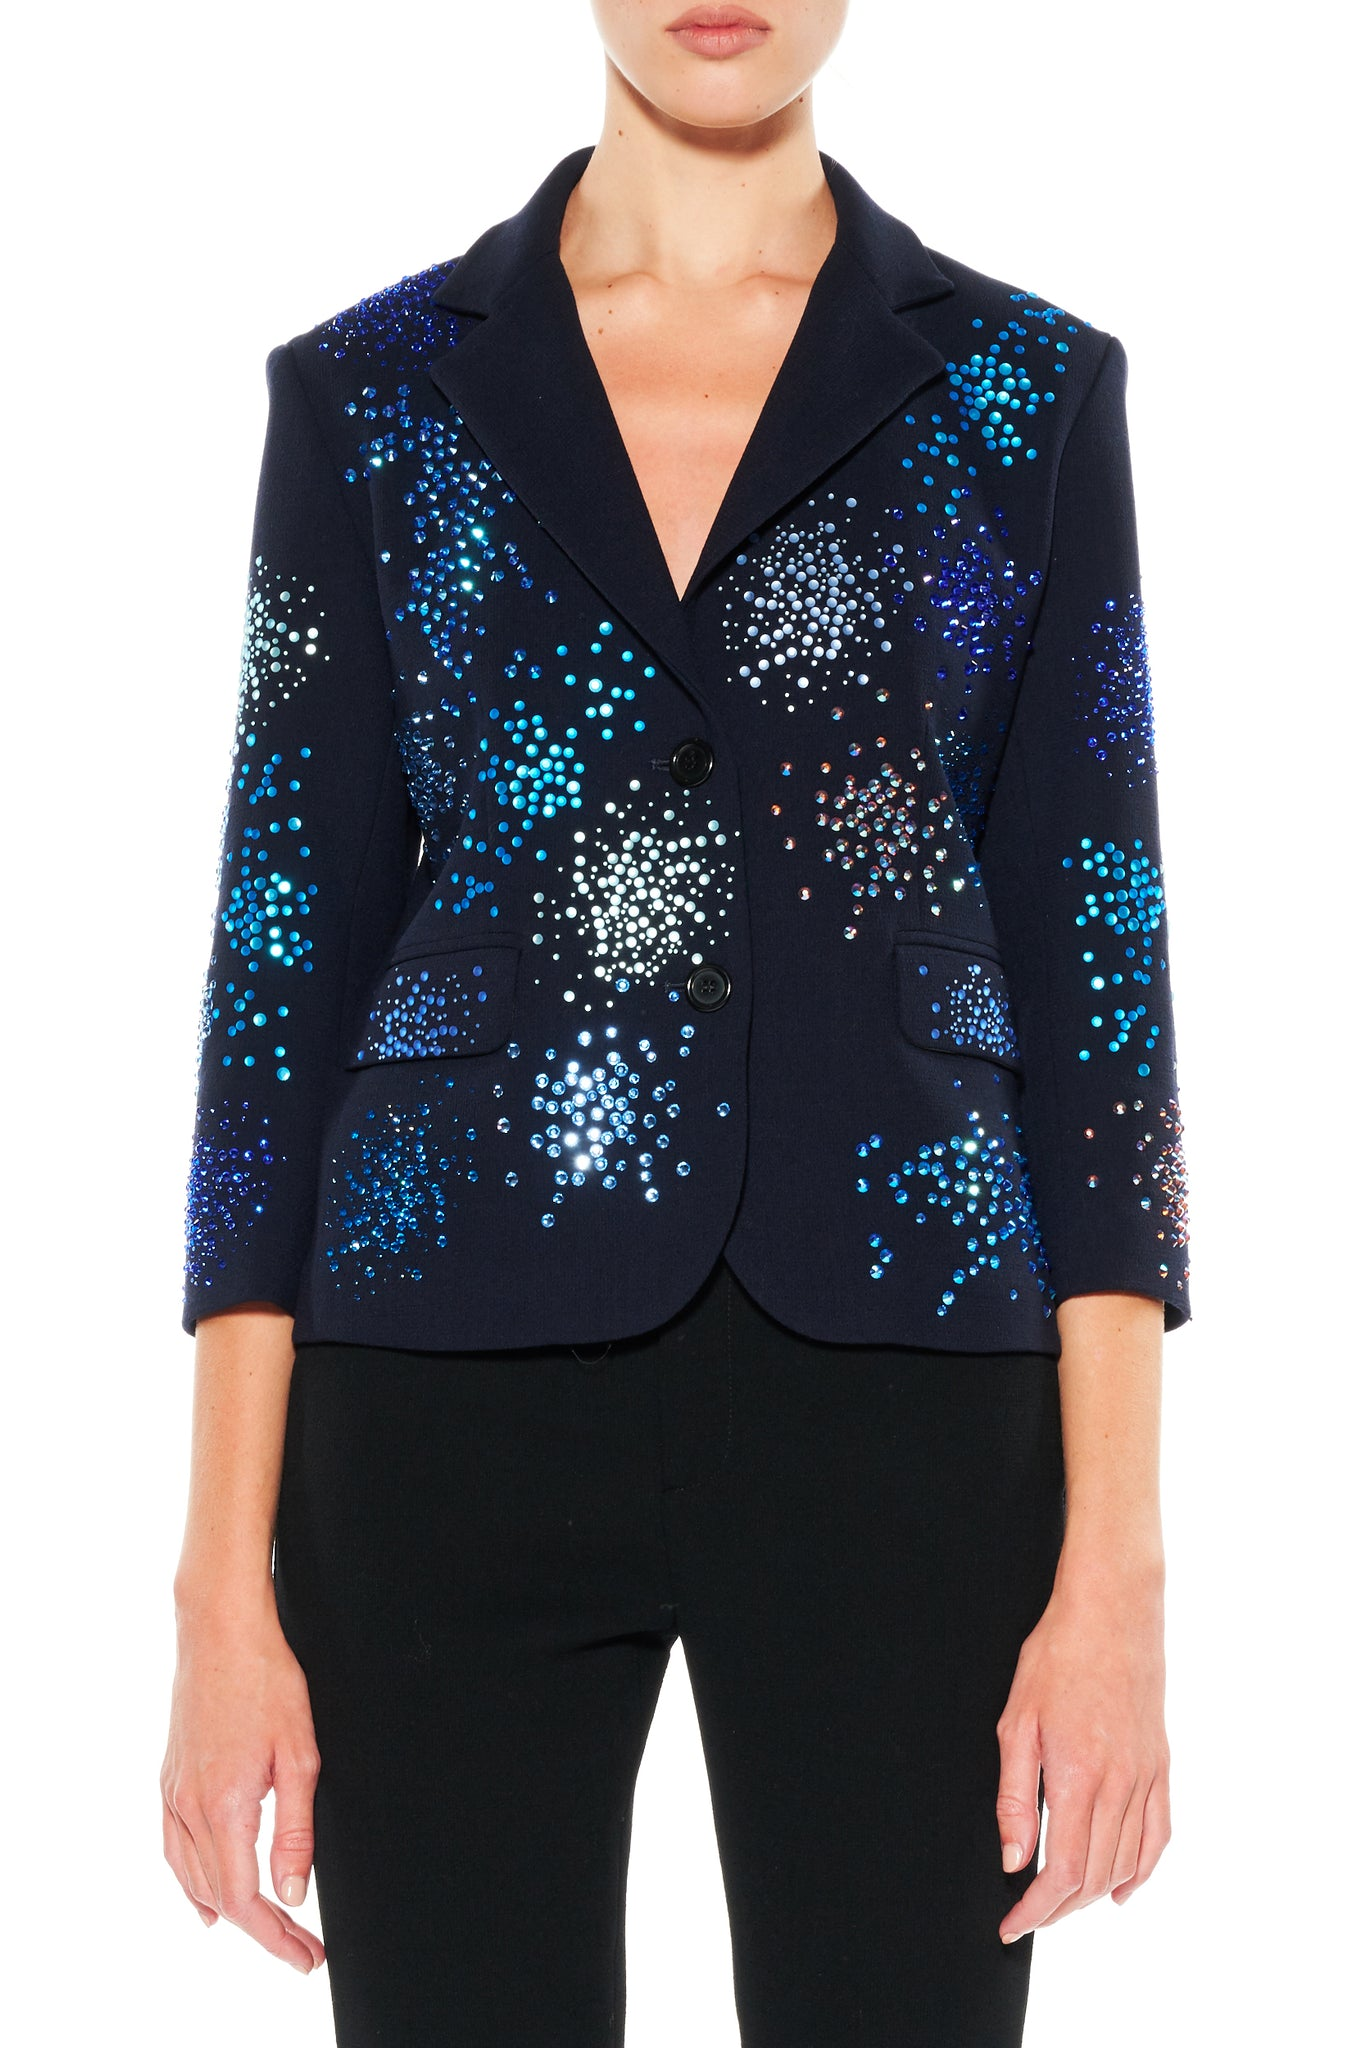 """MO' MONET MO' PROBLEMS"" BLAZER - Women's Jackets & Coats - Libertine"